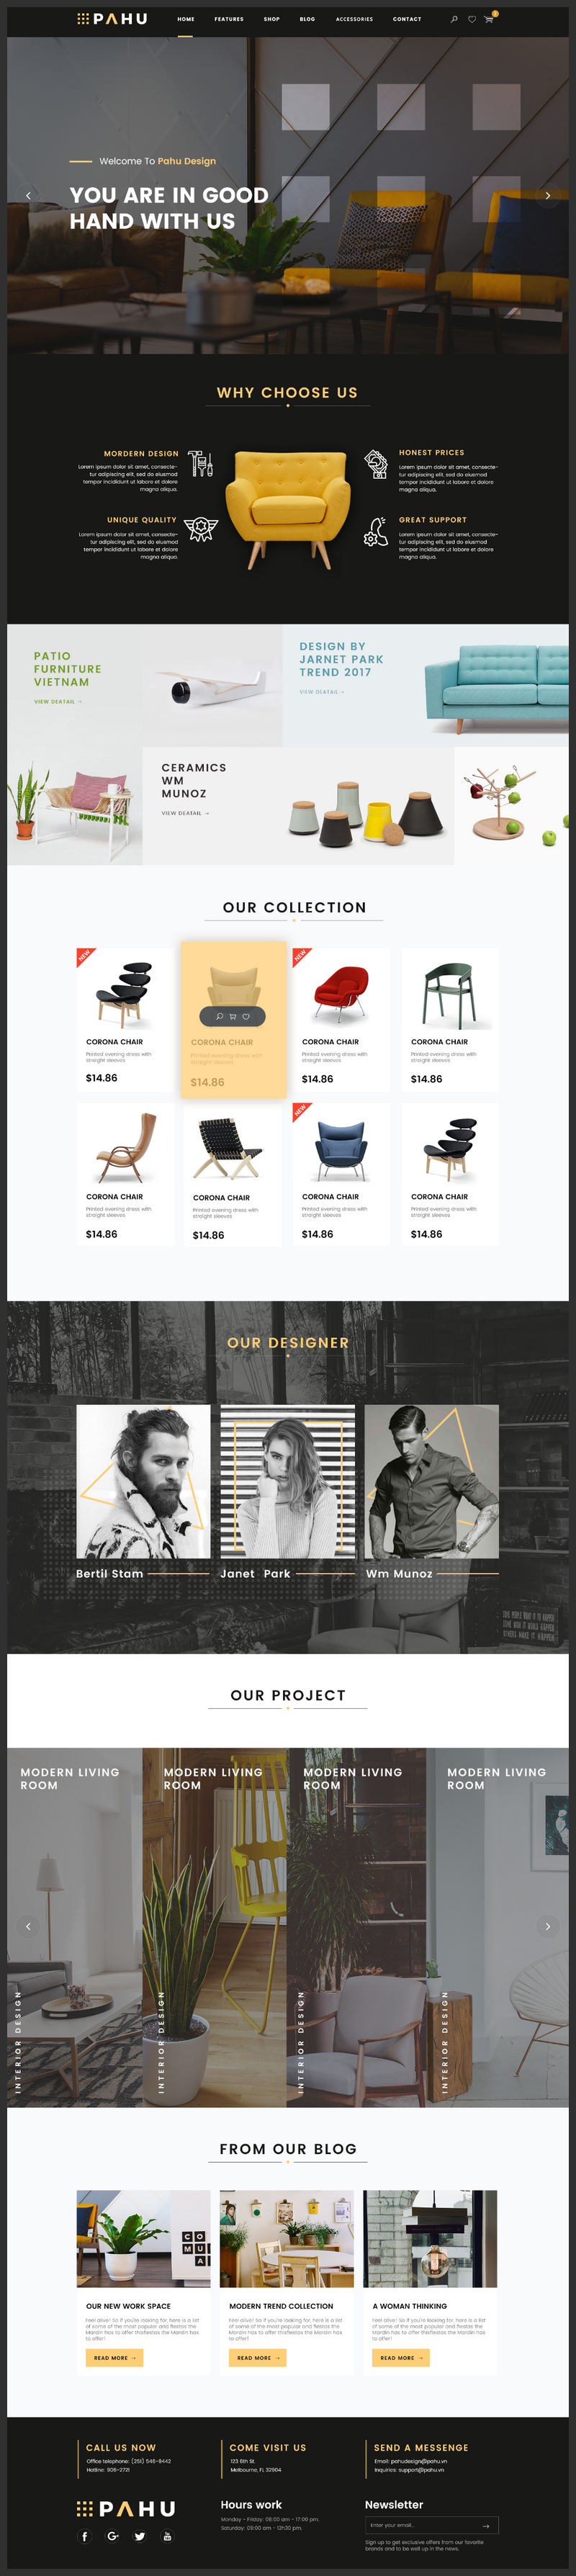 Interior Design Website Template Psd Bypeoplebypeople Howldb